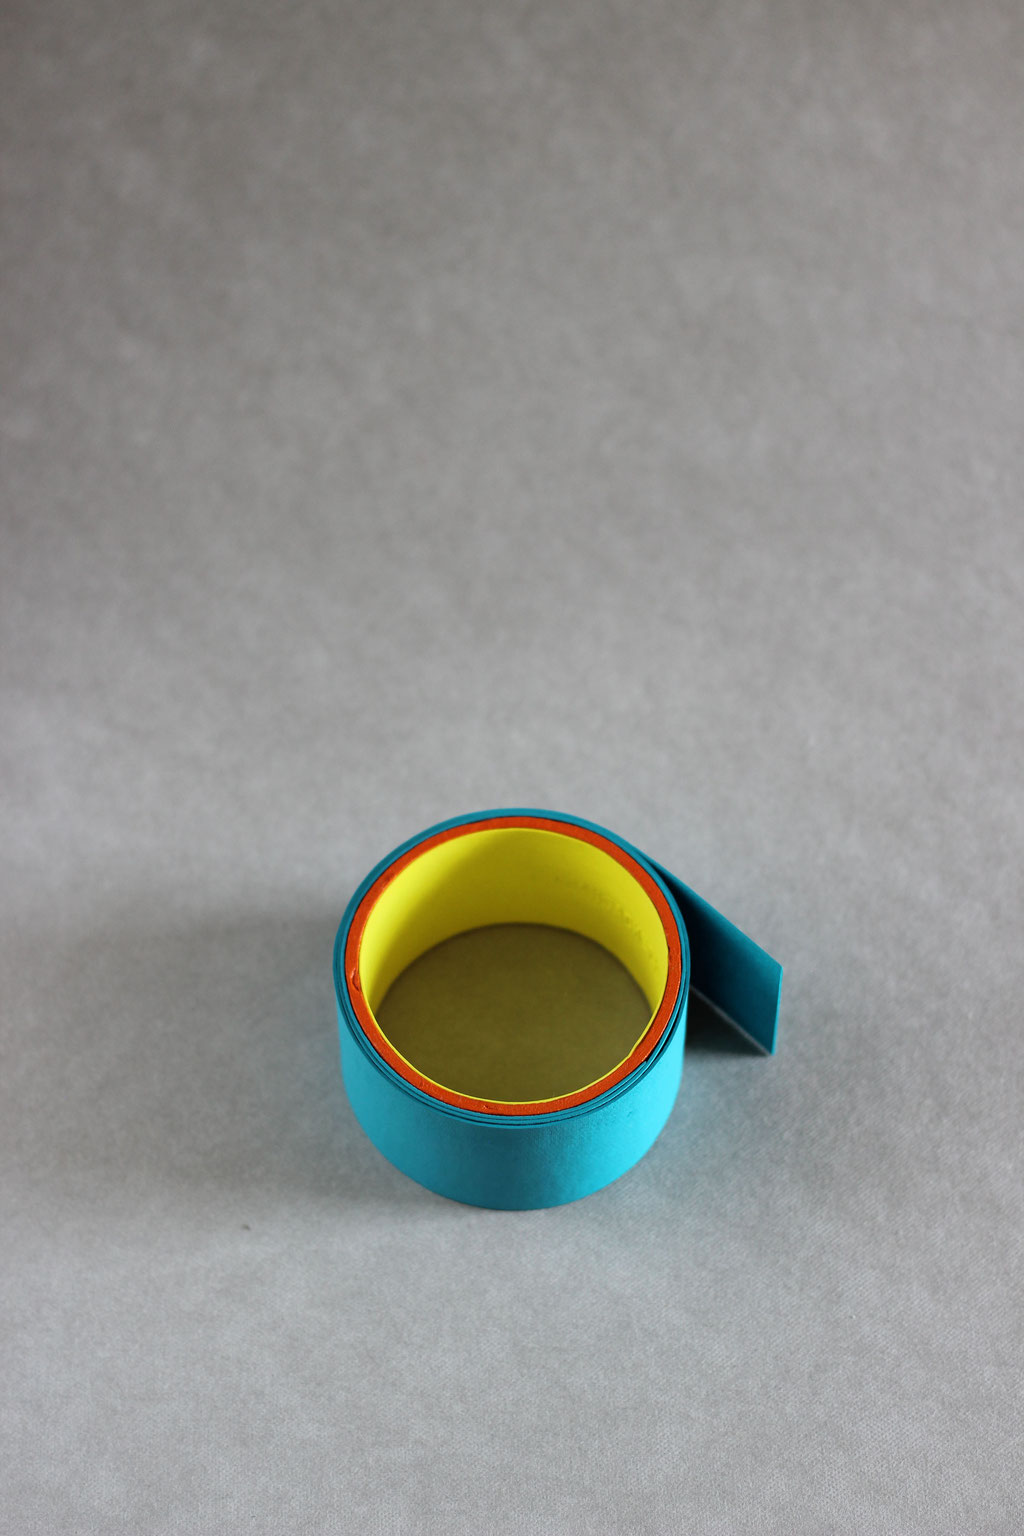 Rolle large turquoise/yellow